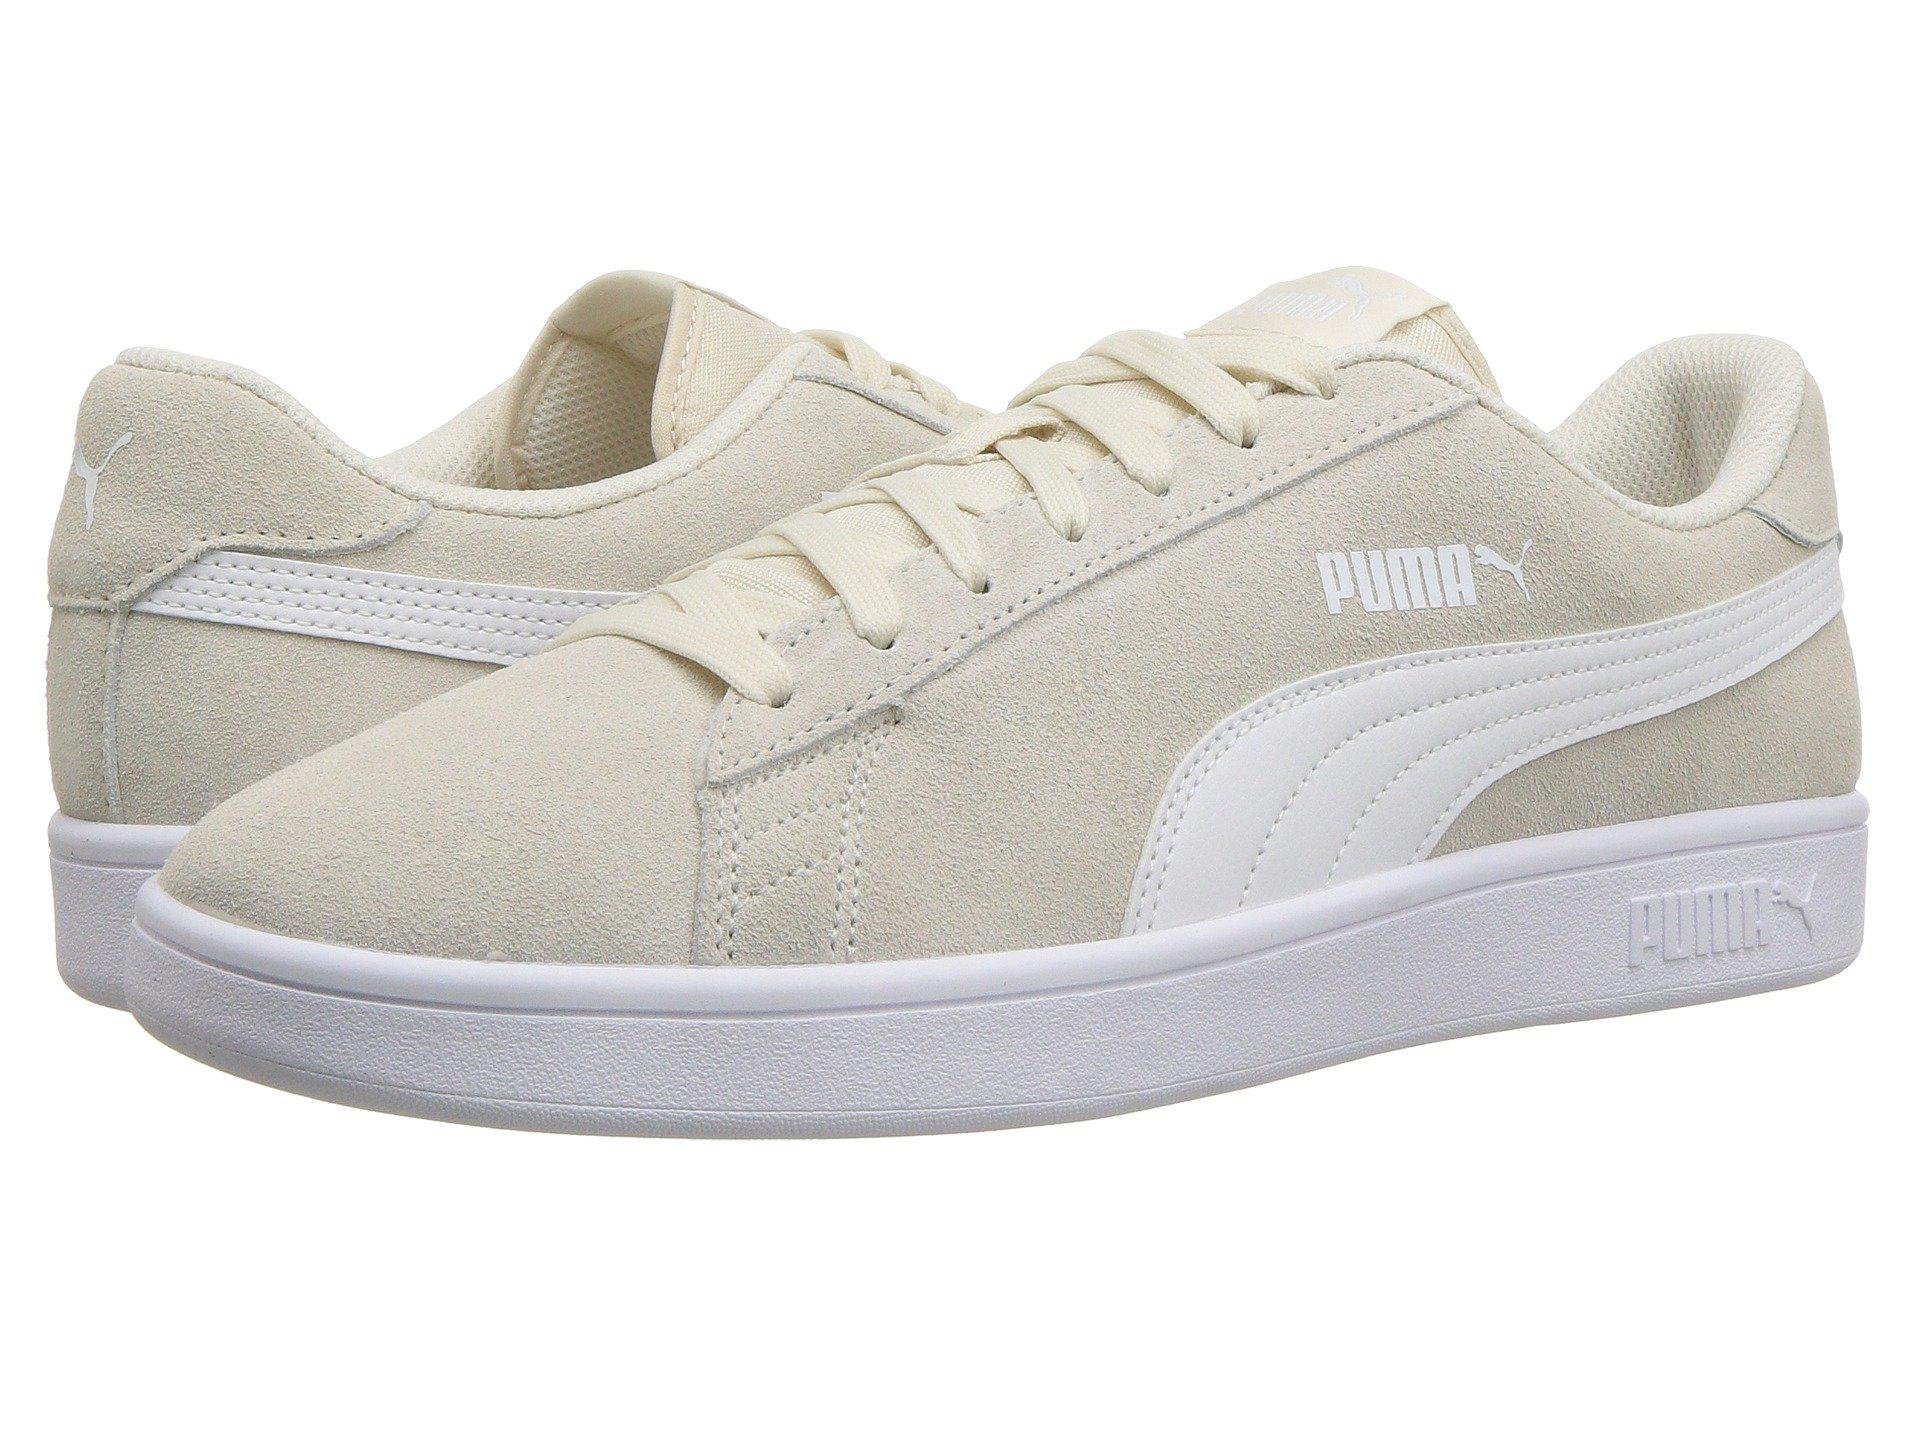 PUMA Smash VS2 Trainers outlet new pay with visa sale online finishline for sale N5pgg4A0